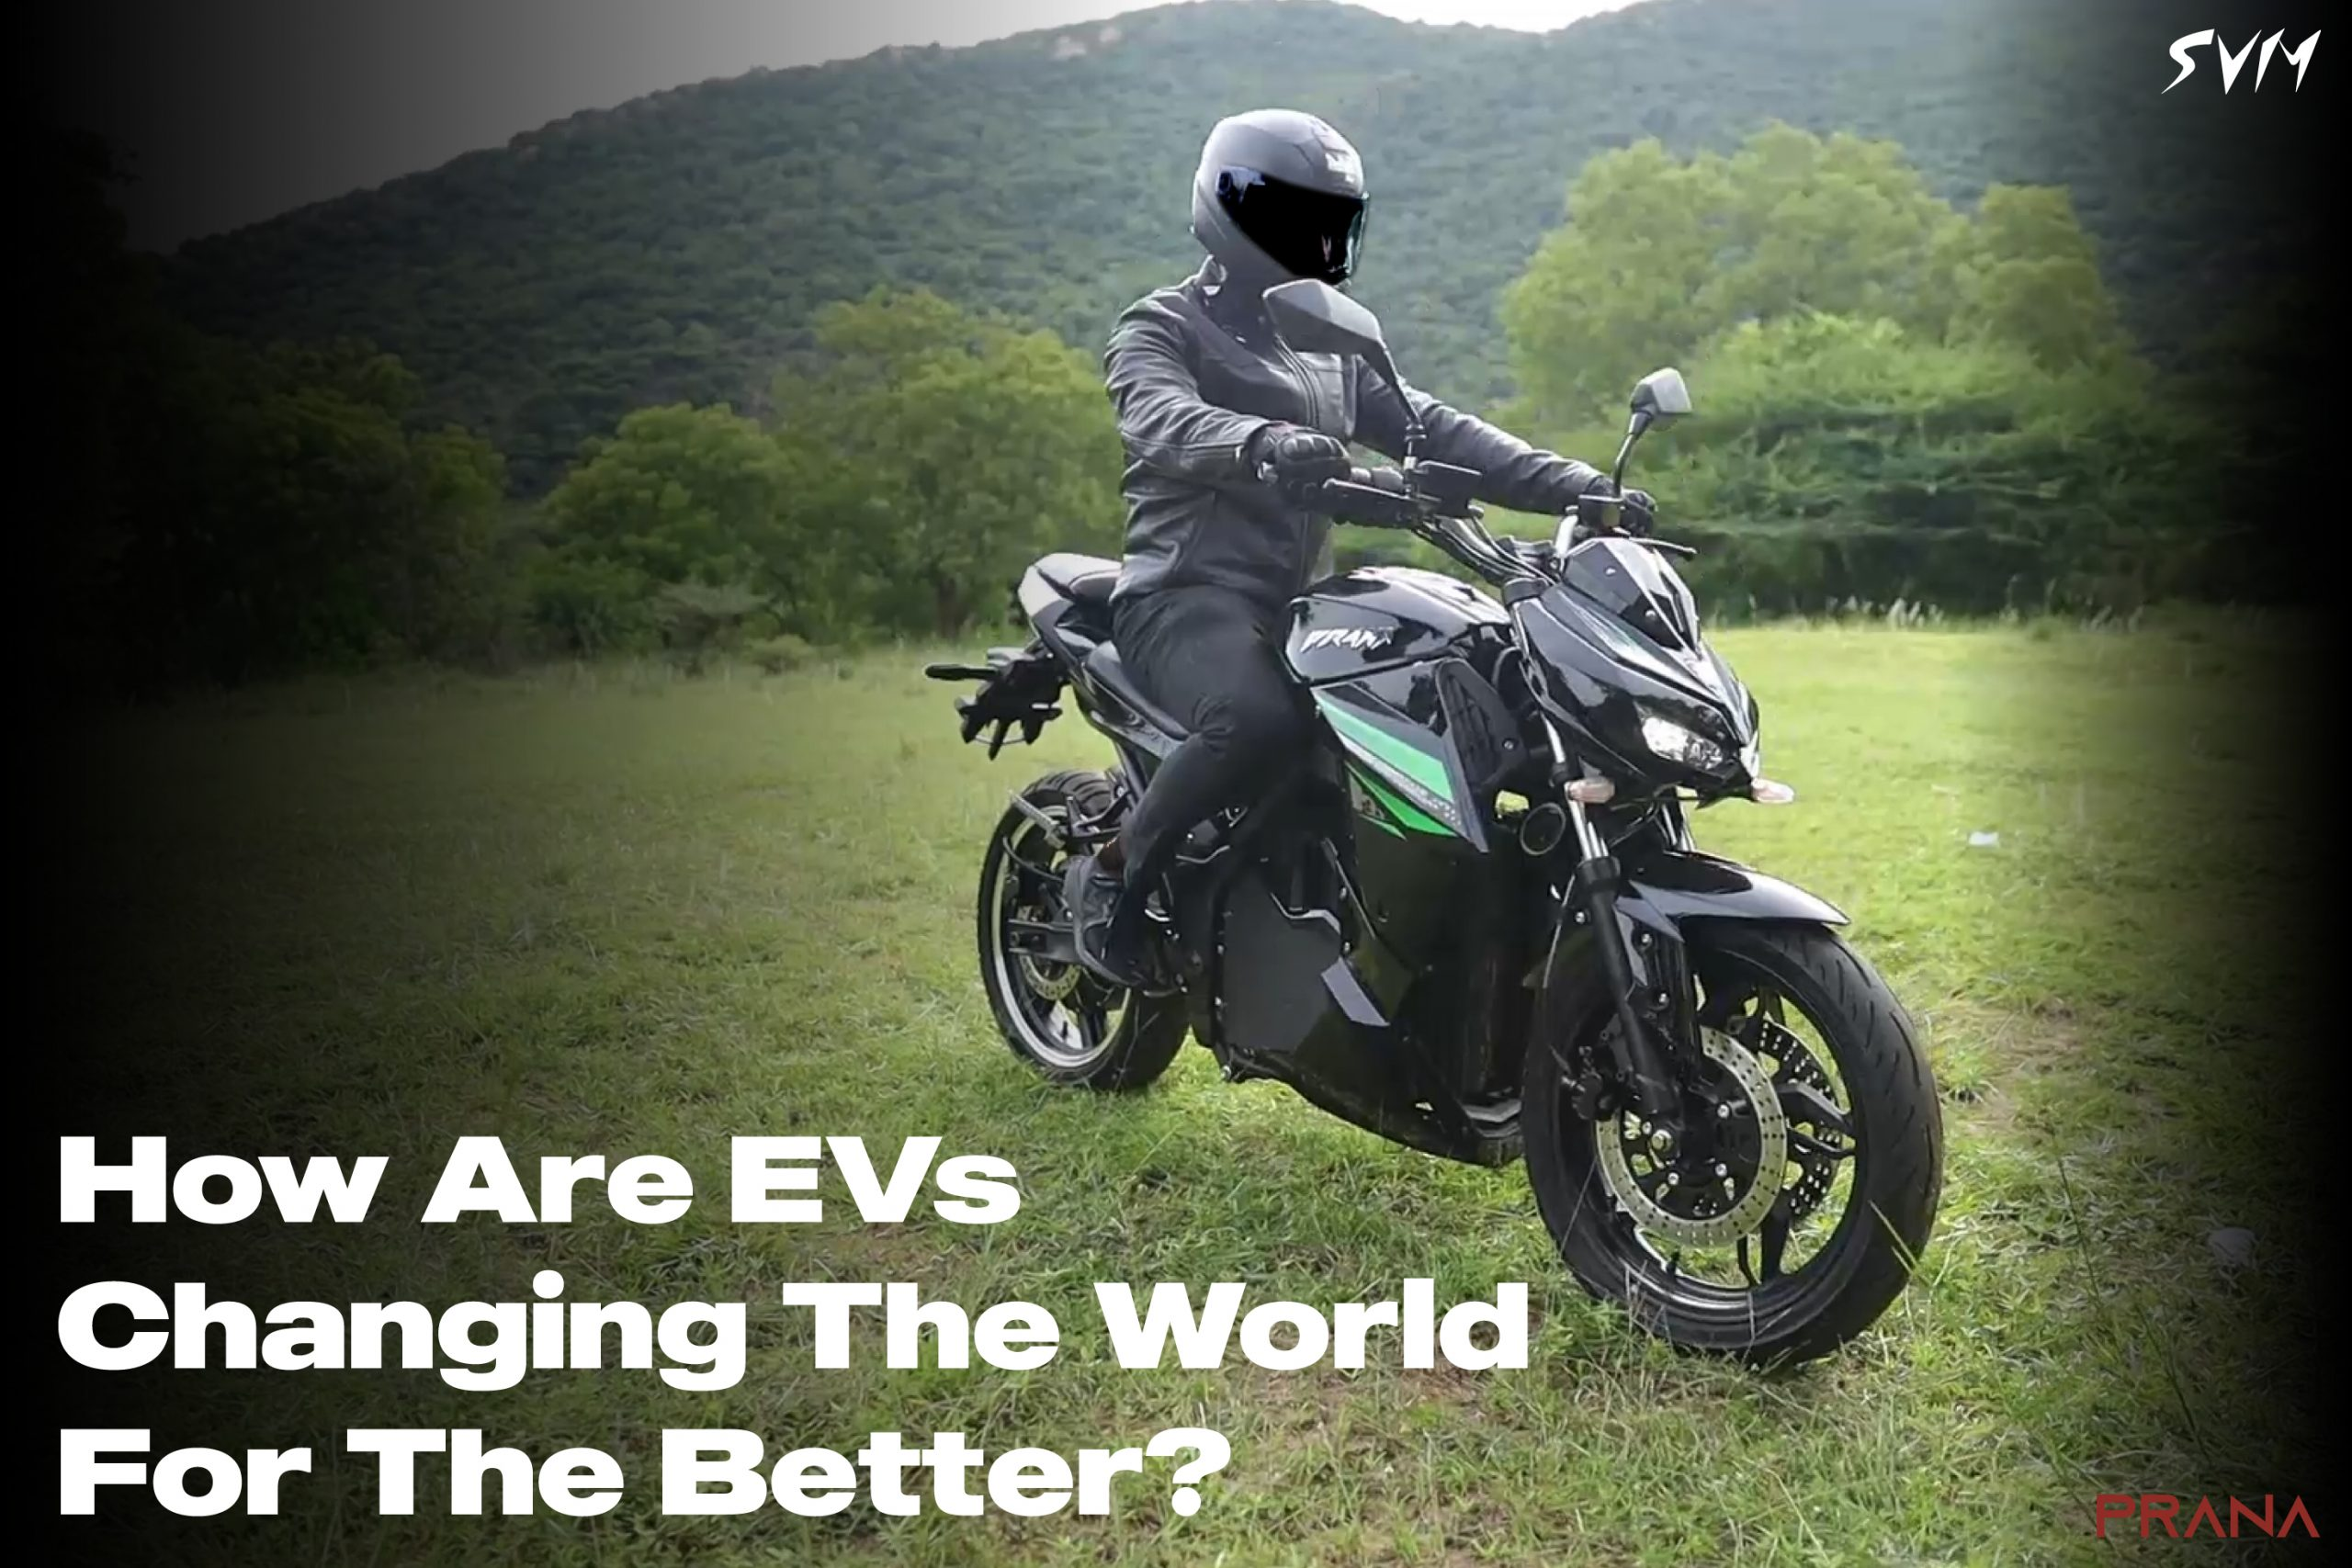 How Are EVs Changing The World For The Better?